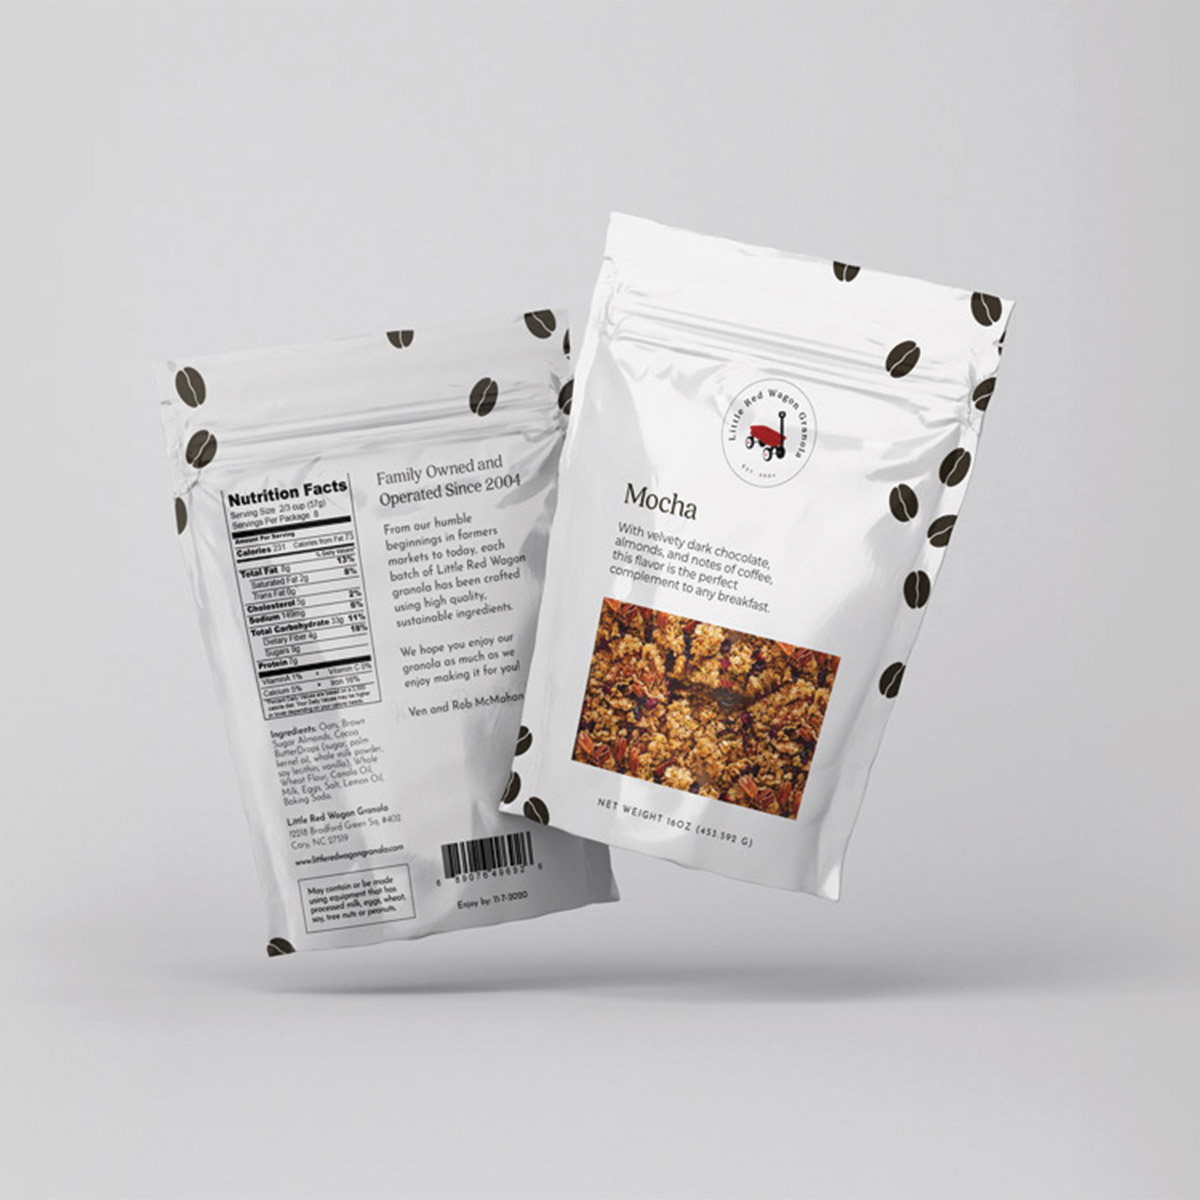 Little Red Wagon Granola Mocha flavor; sustainable food packaging